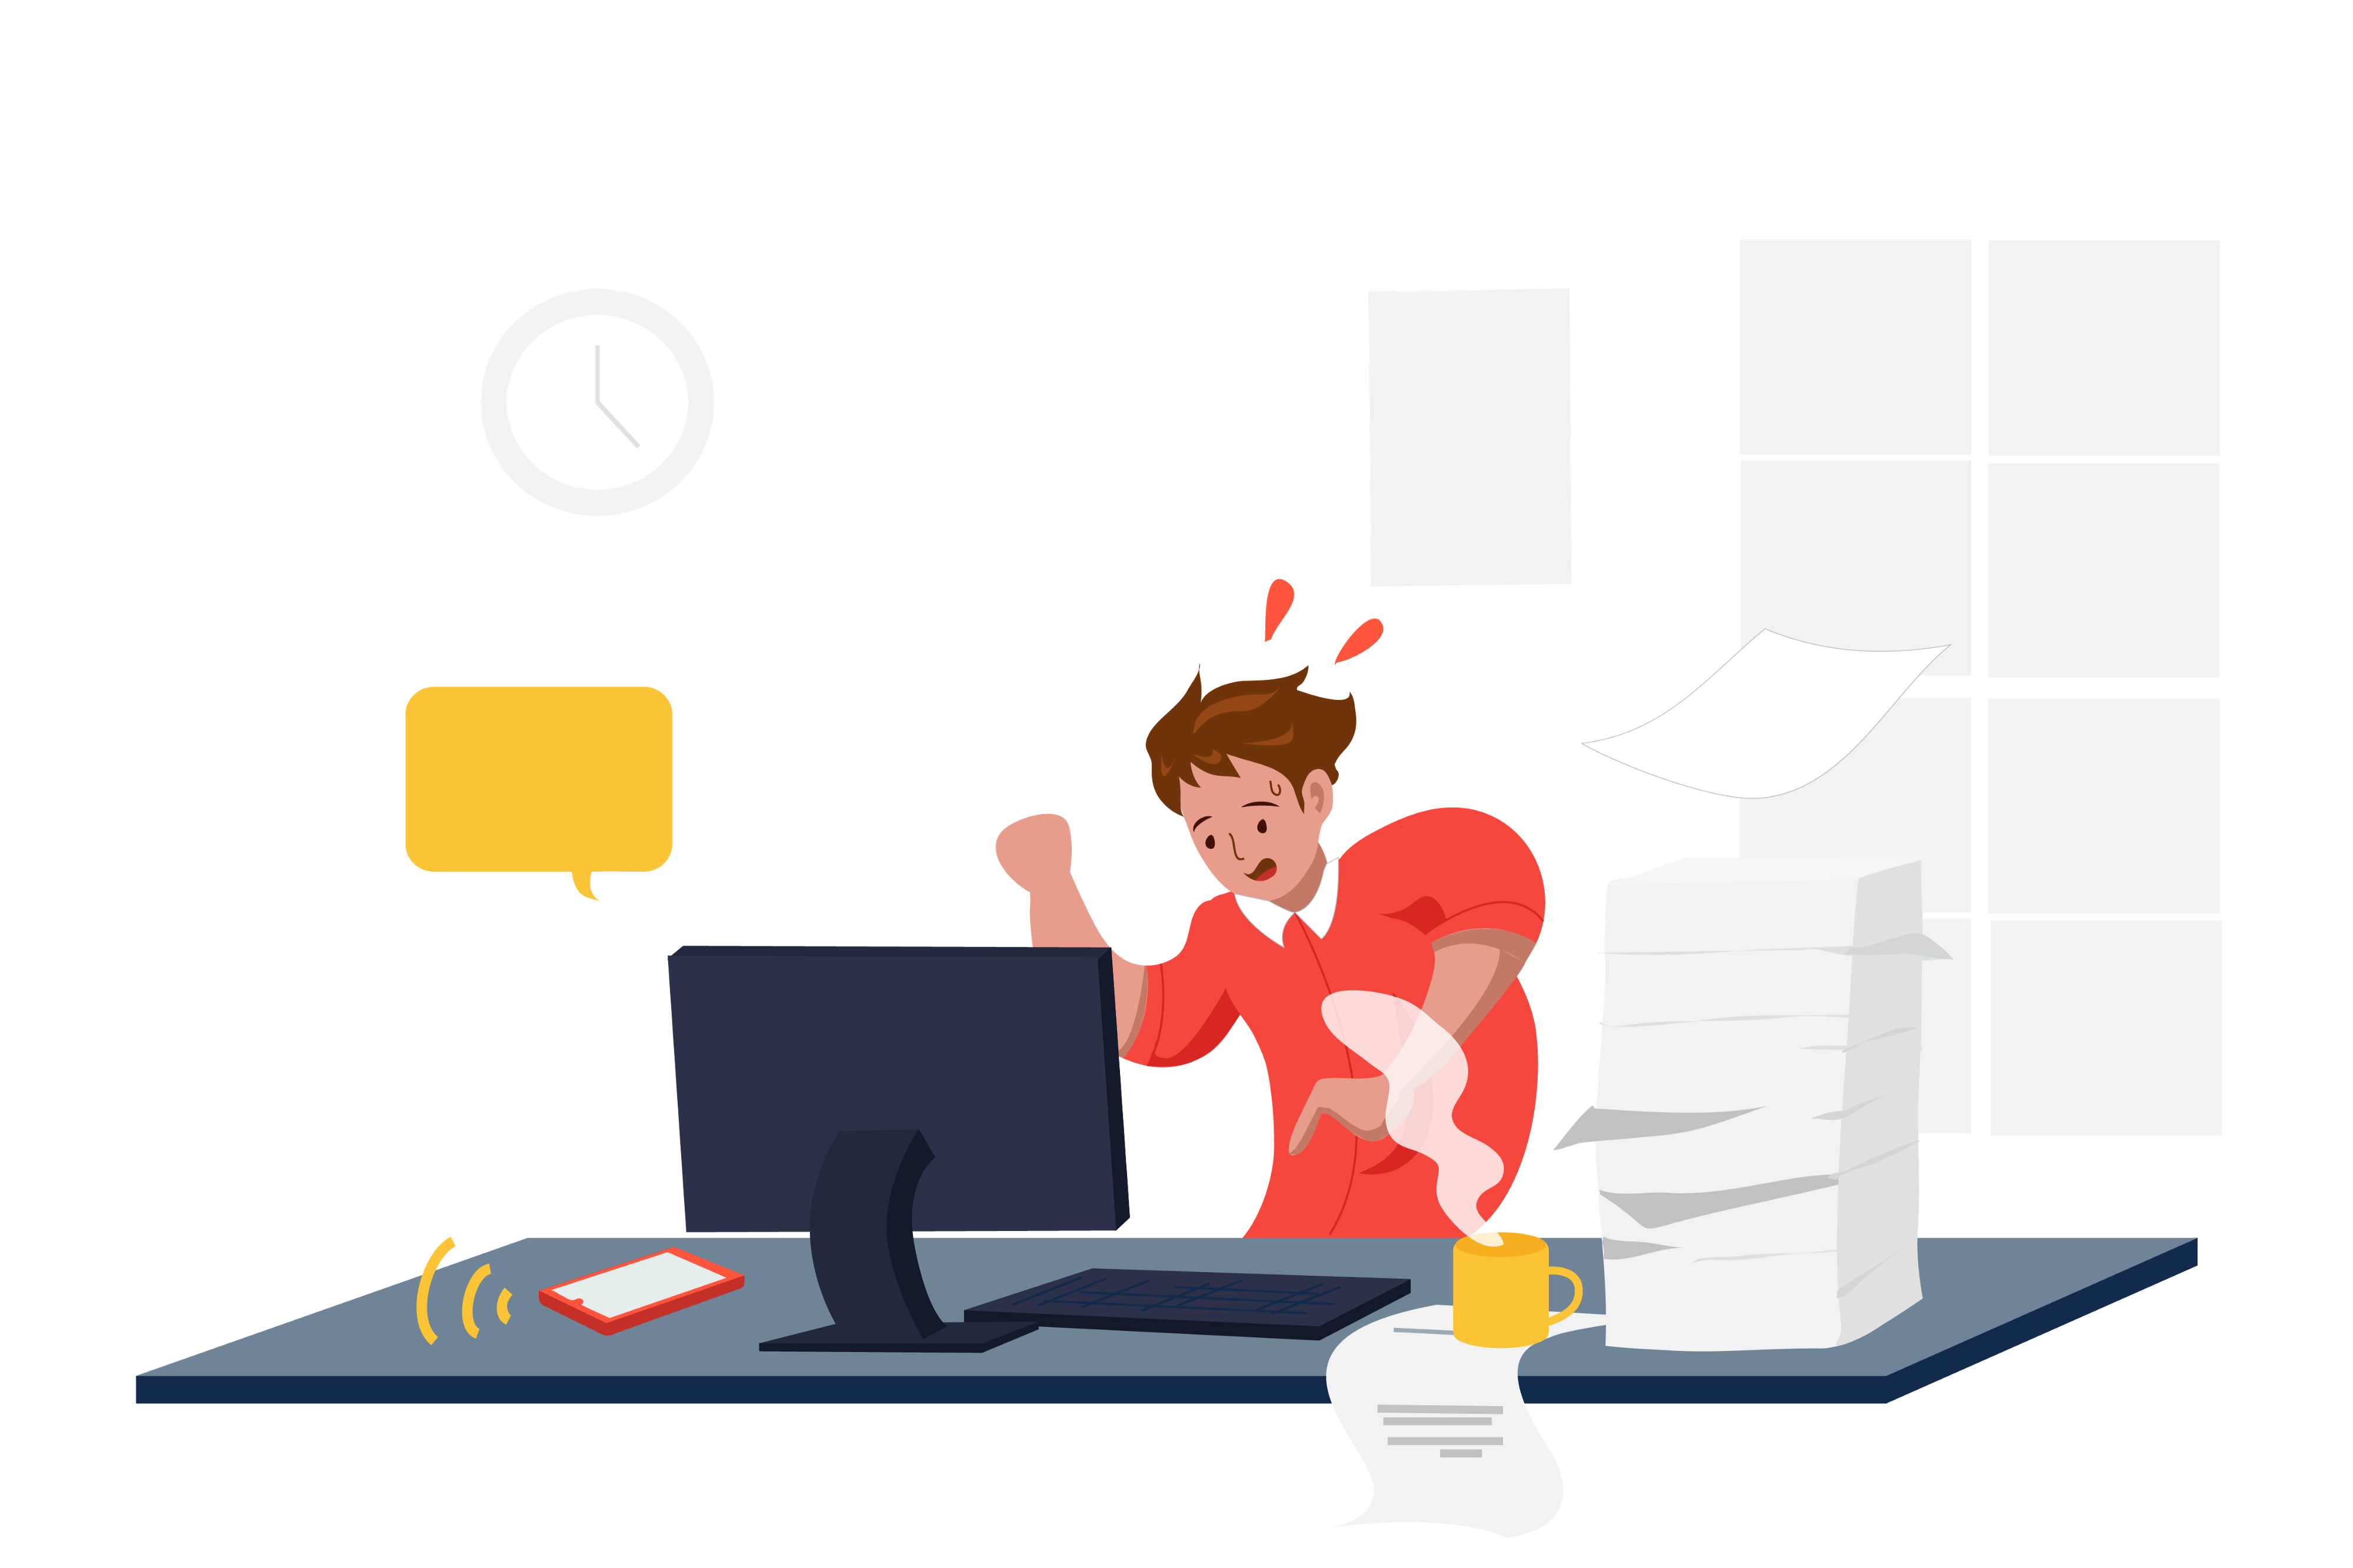 Illustration of a person who is hurriedly typing away at a computer